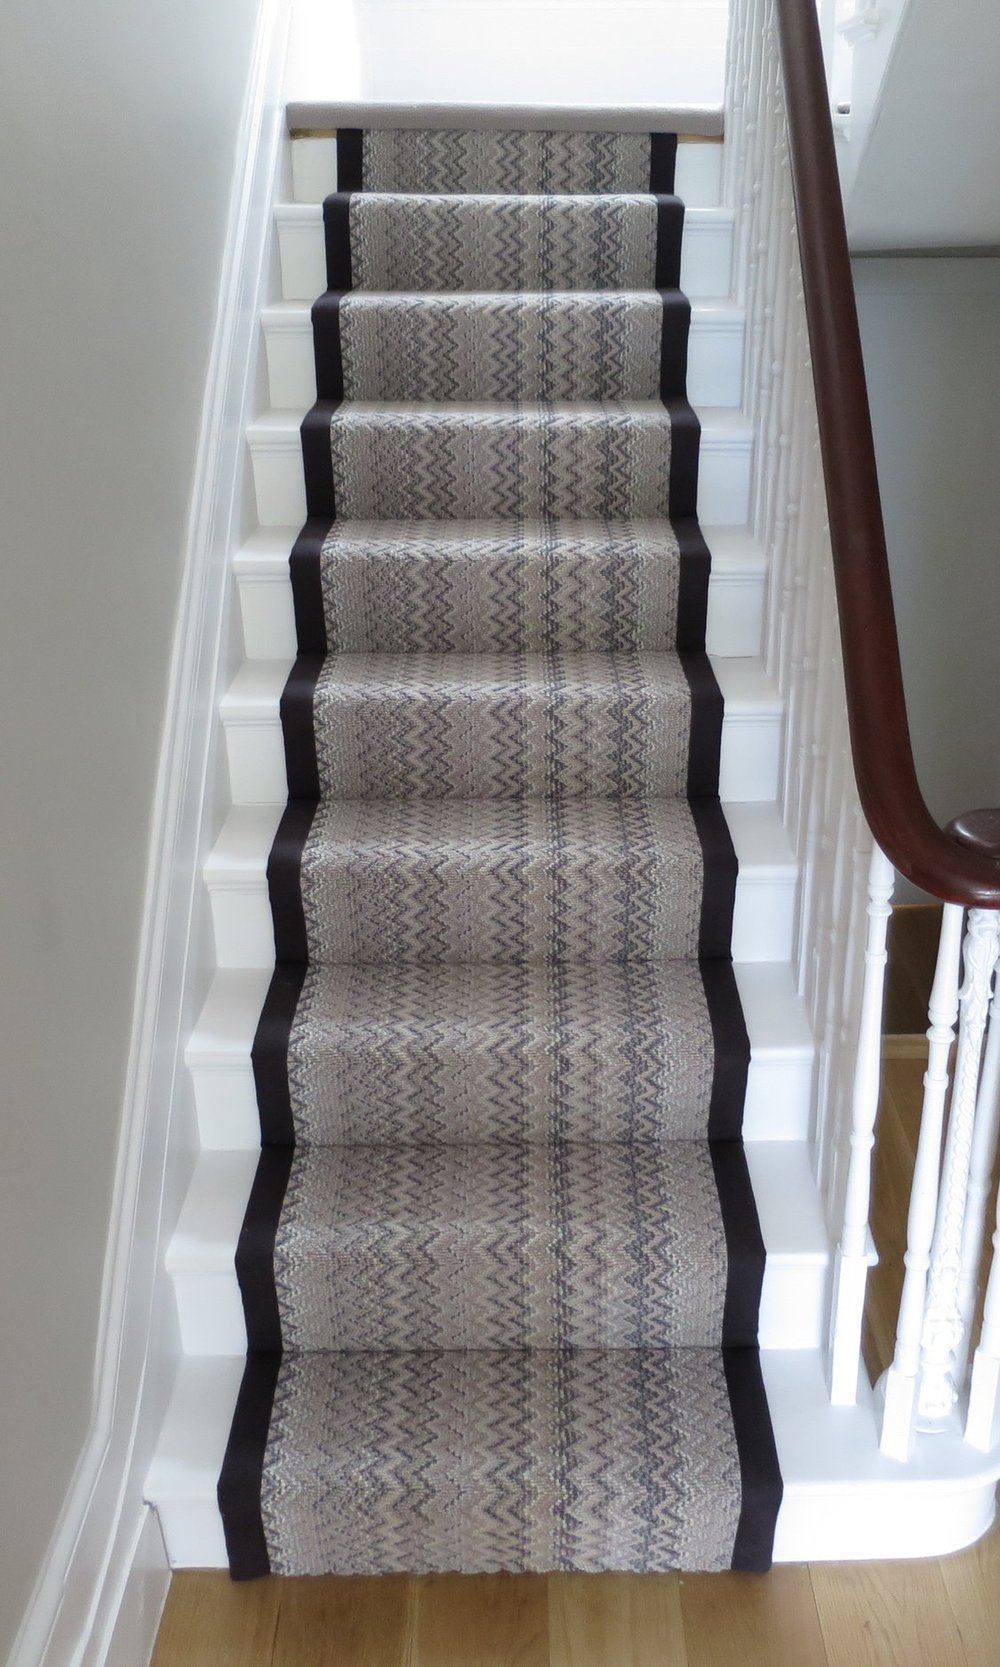 Bespoke Runners - We offer a fully bespoke runner program on the majority of our ranges with custom sizes and edgings to suit any home.